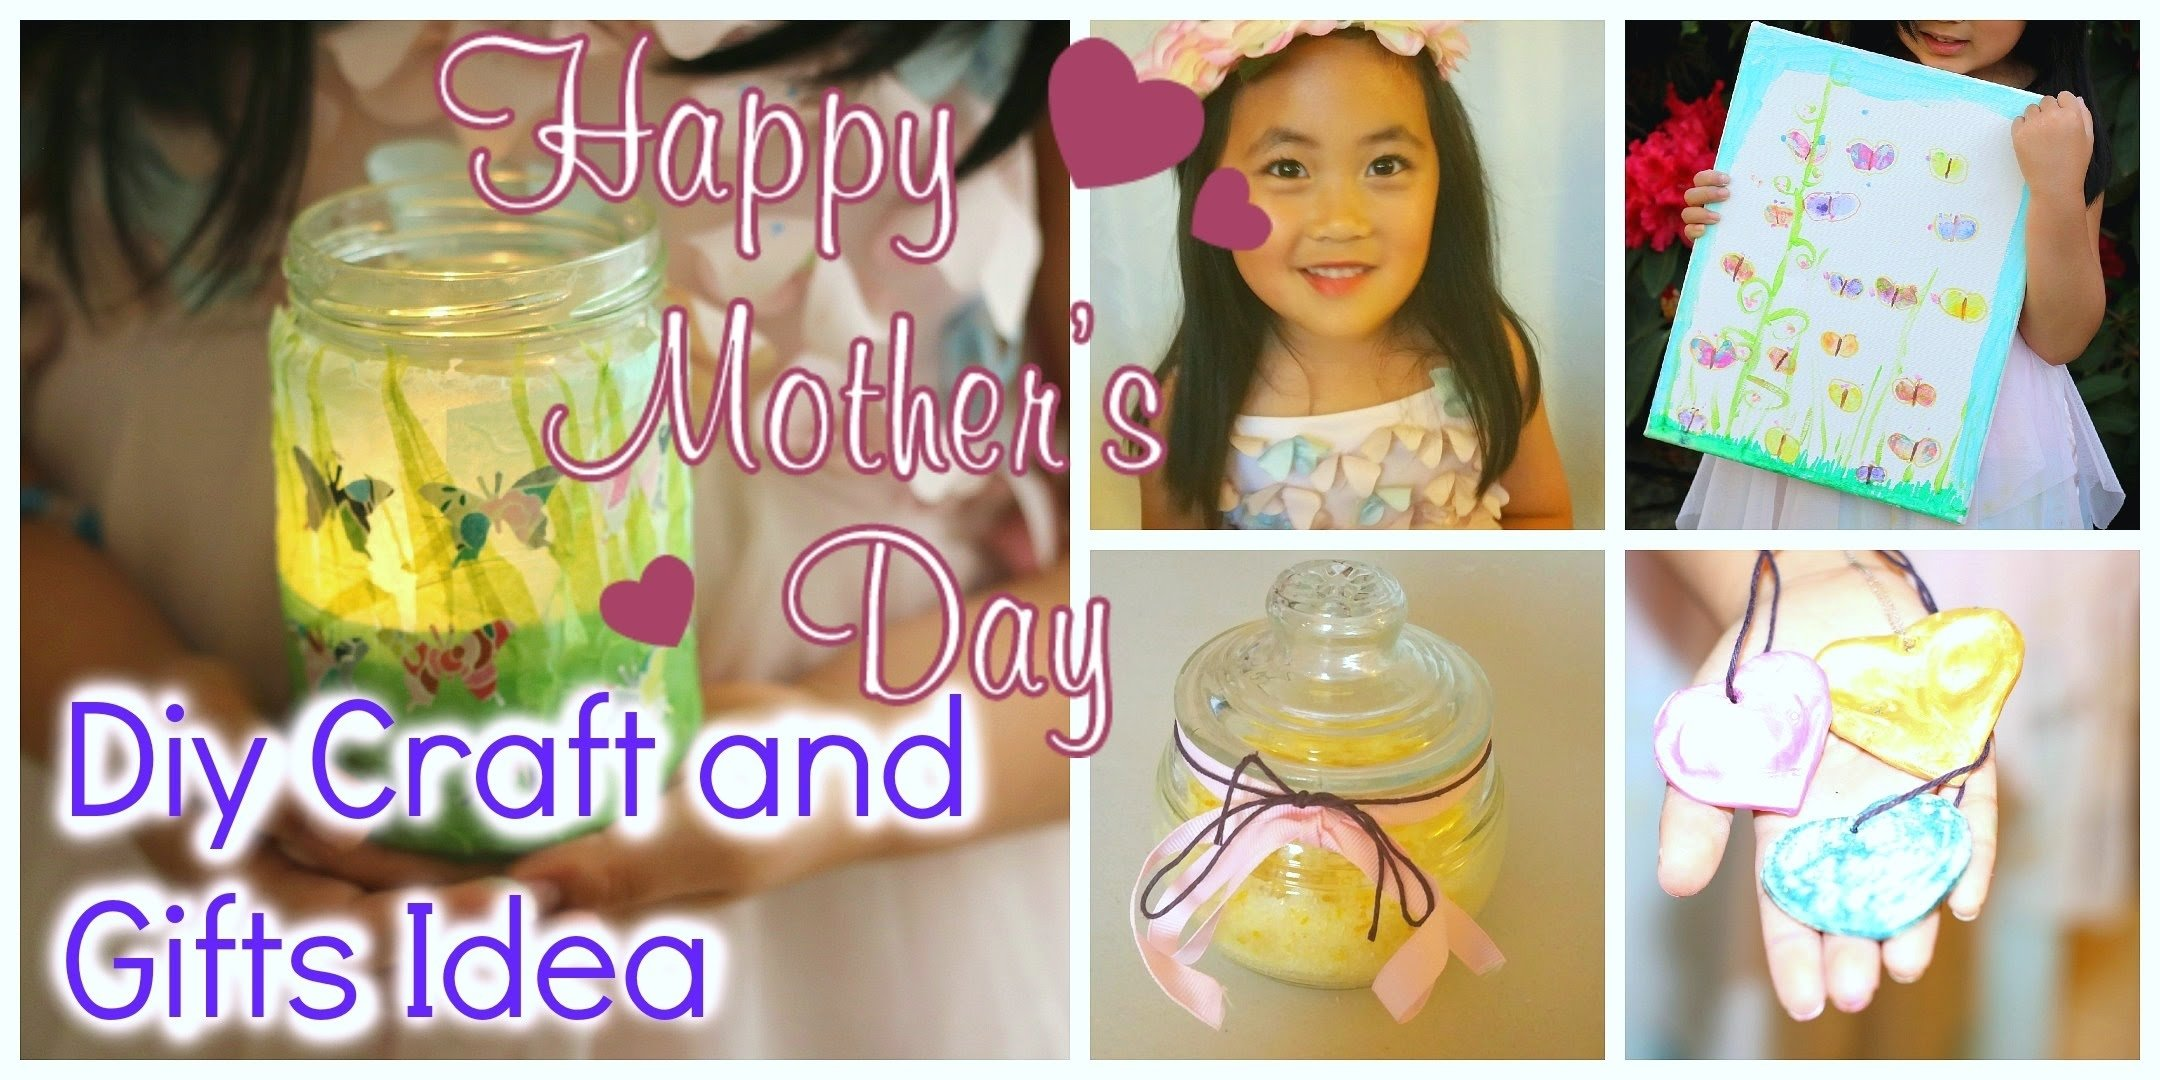 diy mother's day gift ideas kids friendly craft - youtube